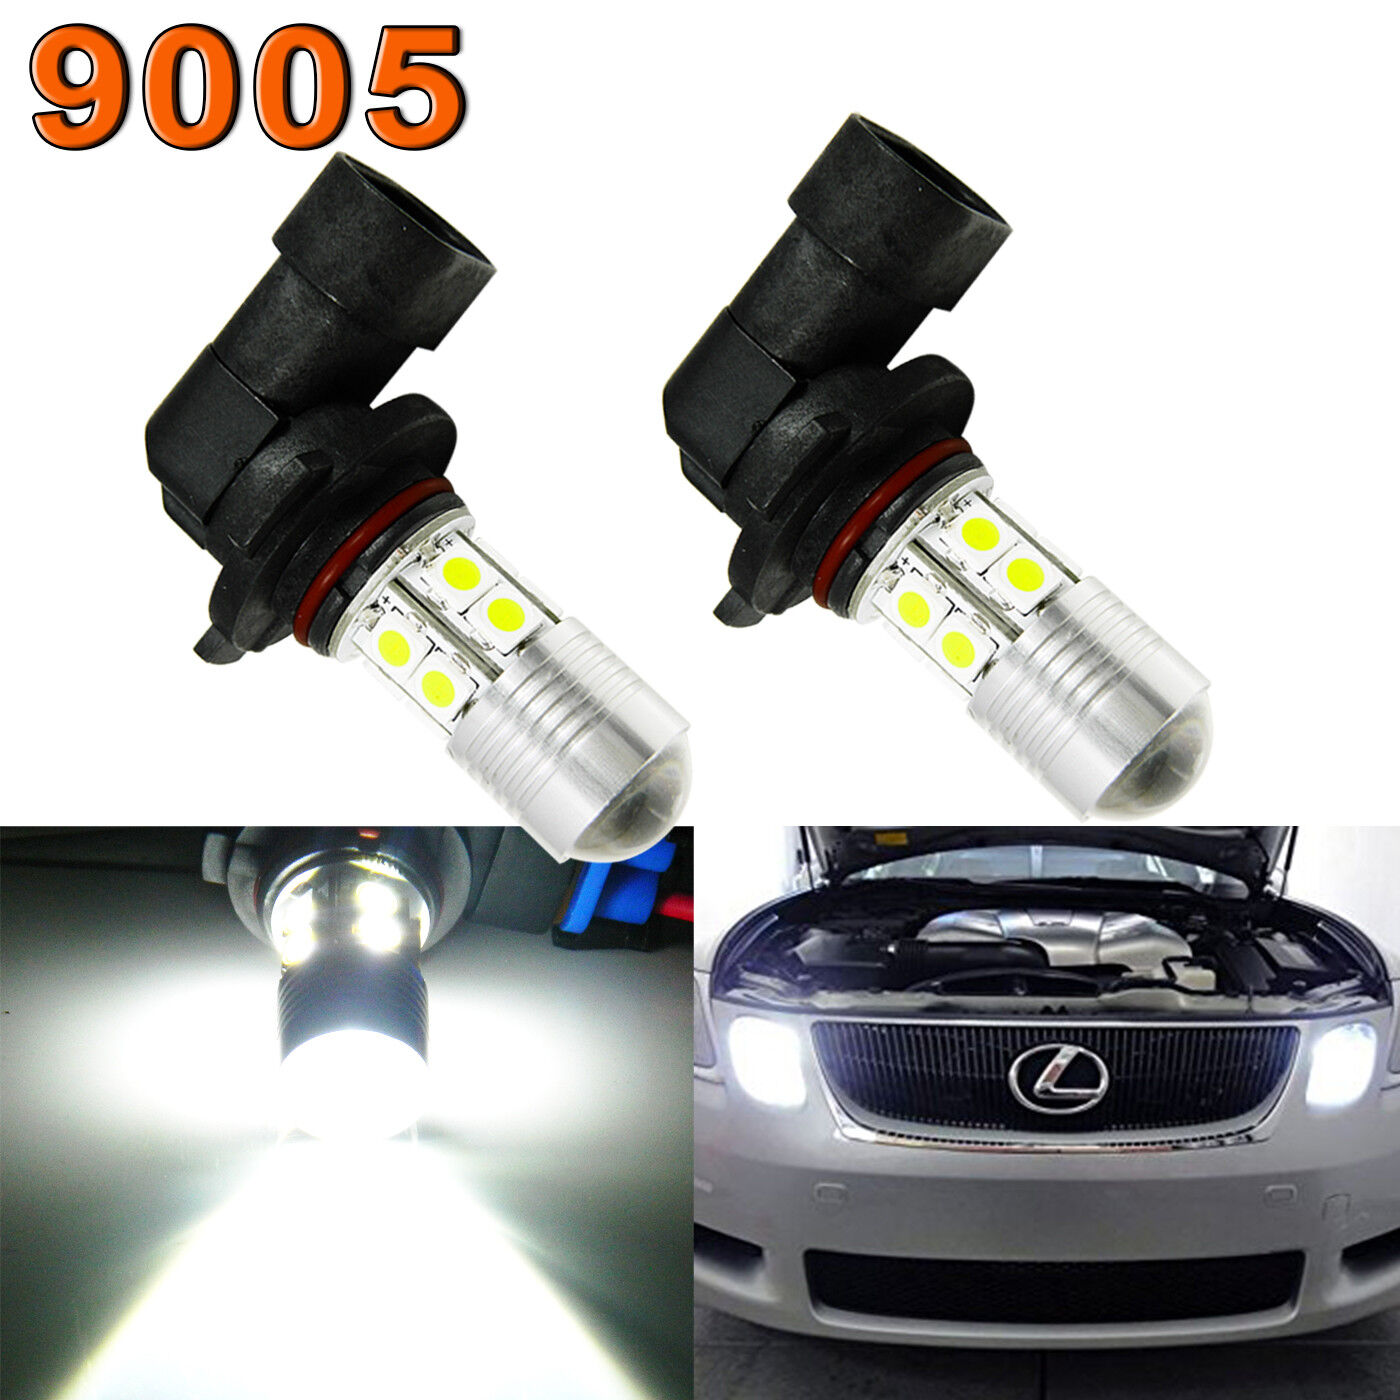 144-SMD 9005 LED High Beam Daytime Running Light Kit For Lexus IS GS ES LS RX LX